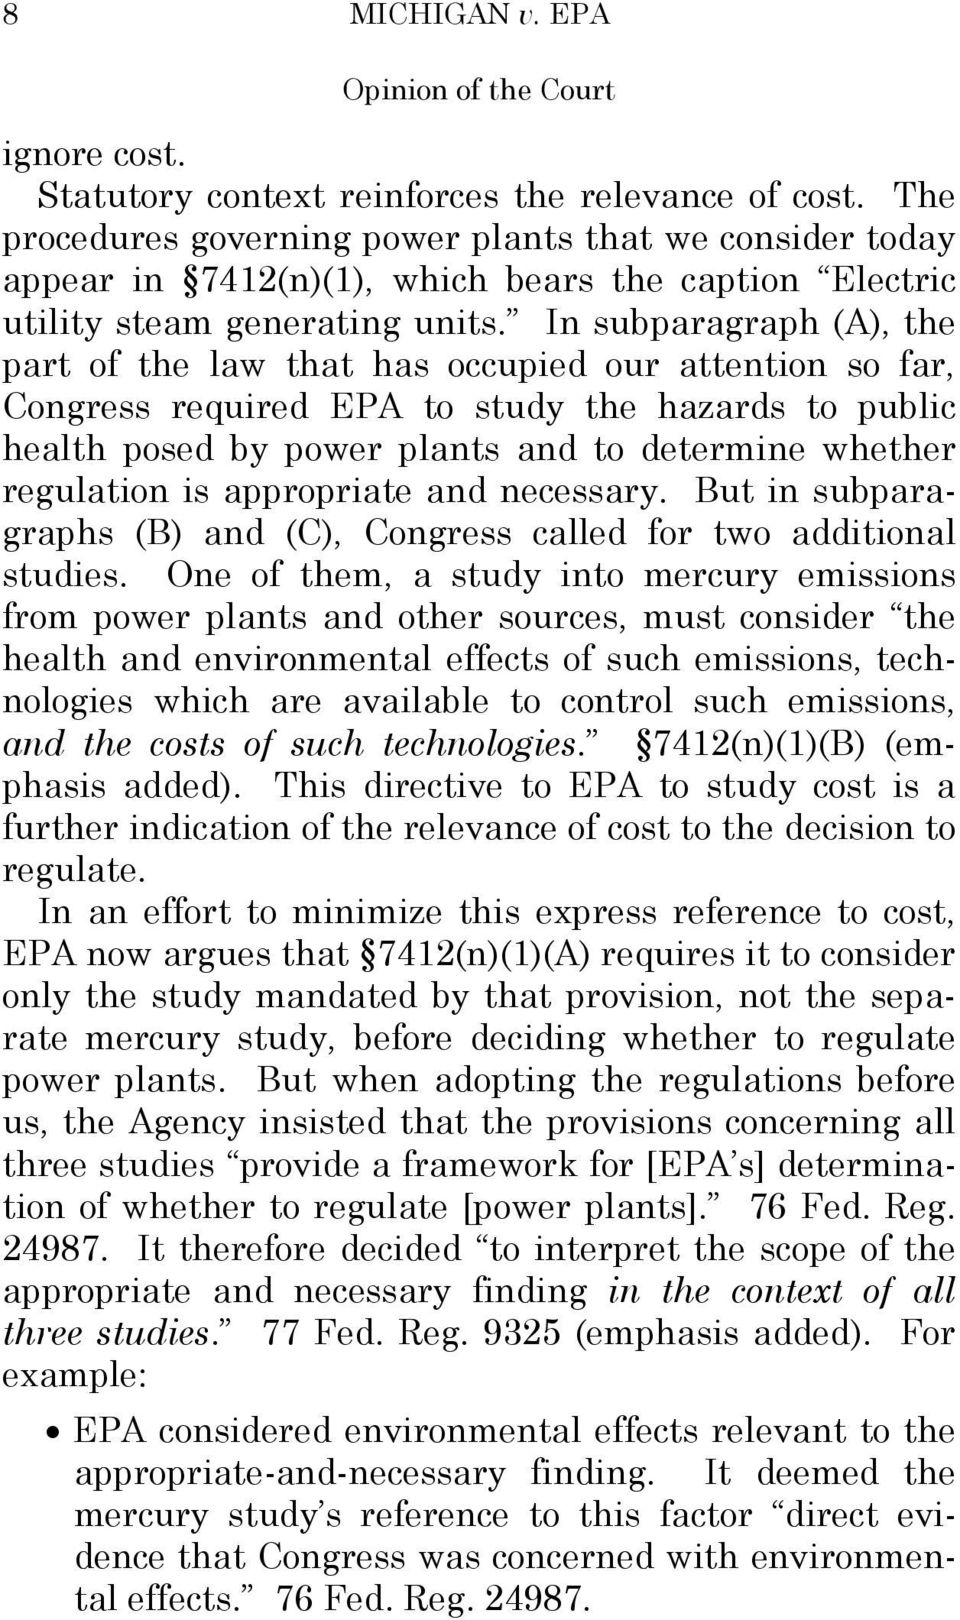 In subparagraph (A), the part of the law that has occupied our attention so far, Congress required EPA to study the hazards to public health posed by power plants and to determine whether regulation